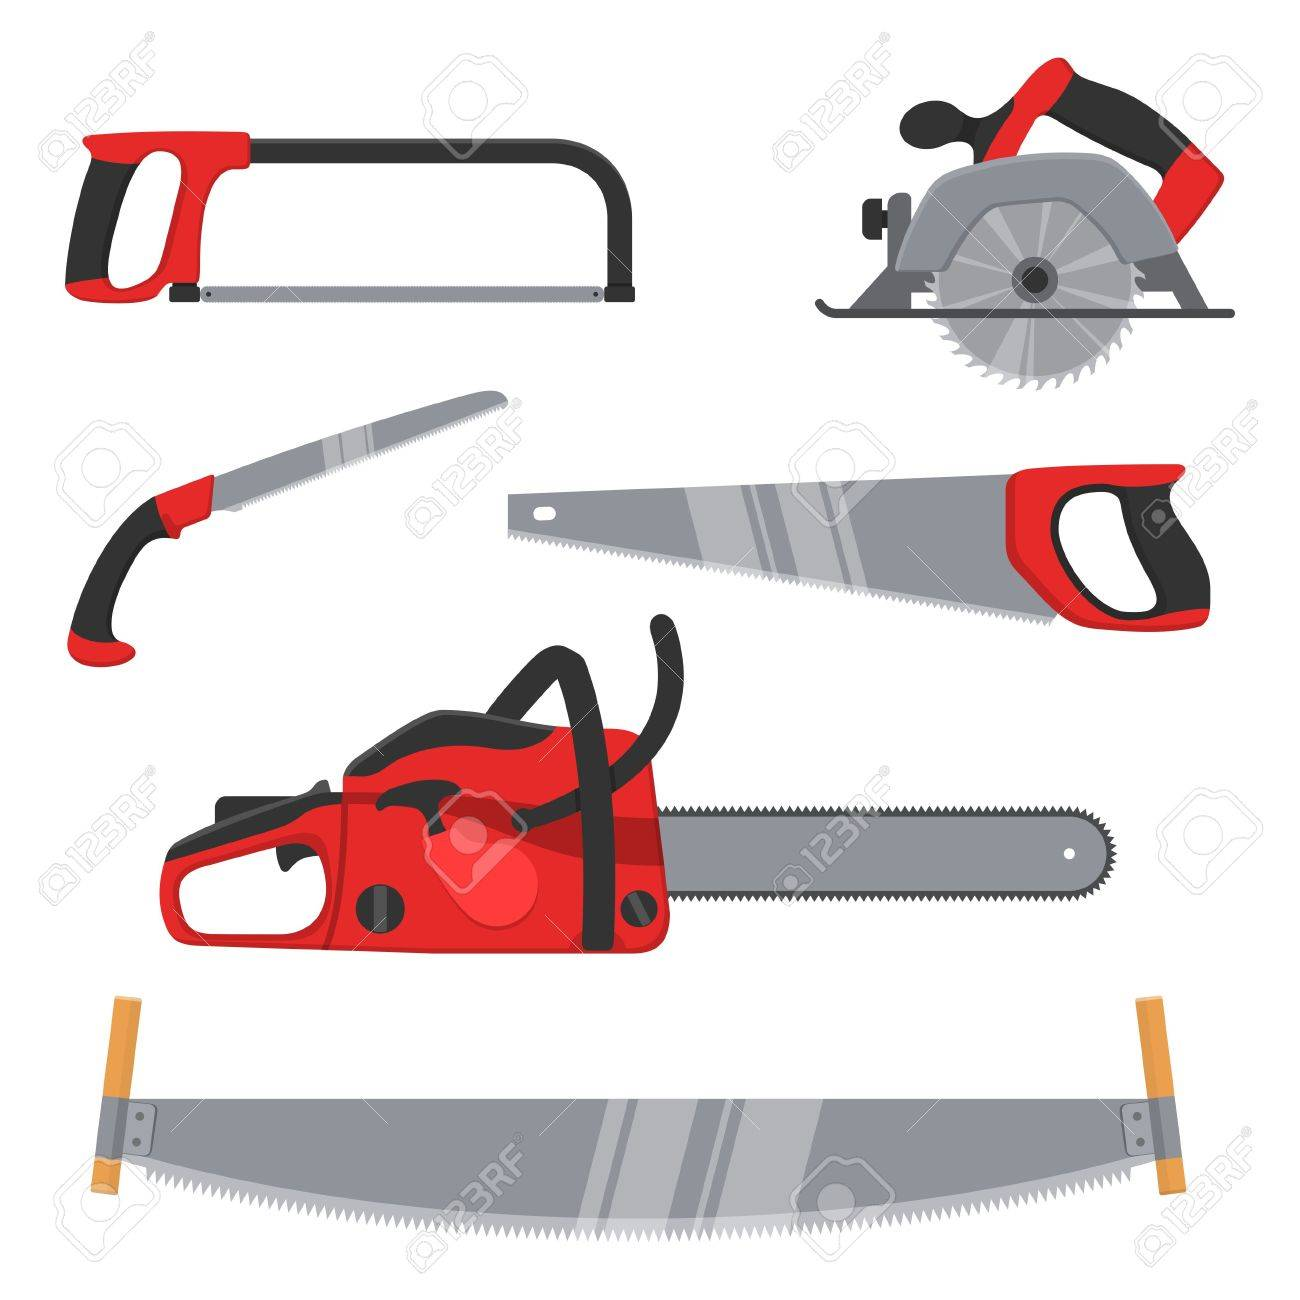 Woodworking Hand Tools Clipart Woodworking Hand Tools Clipart